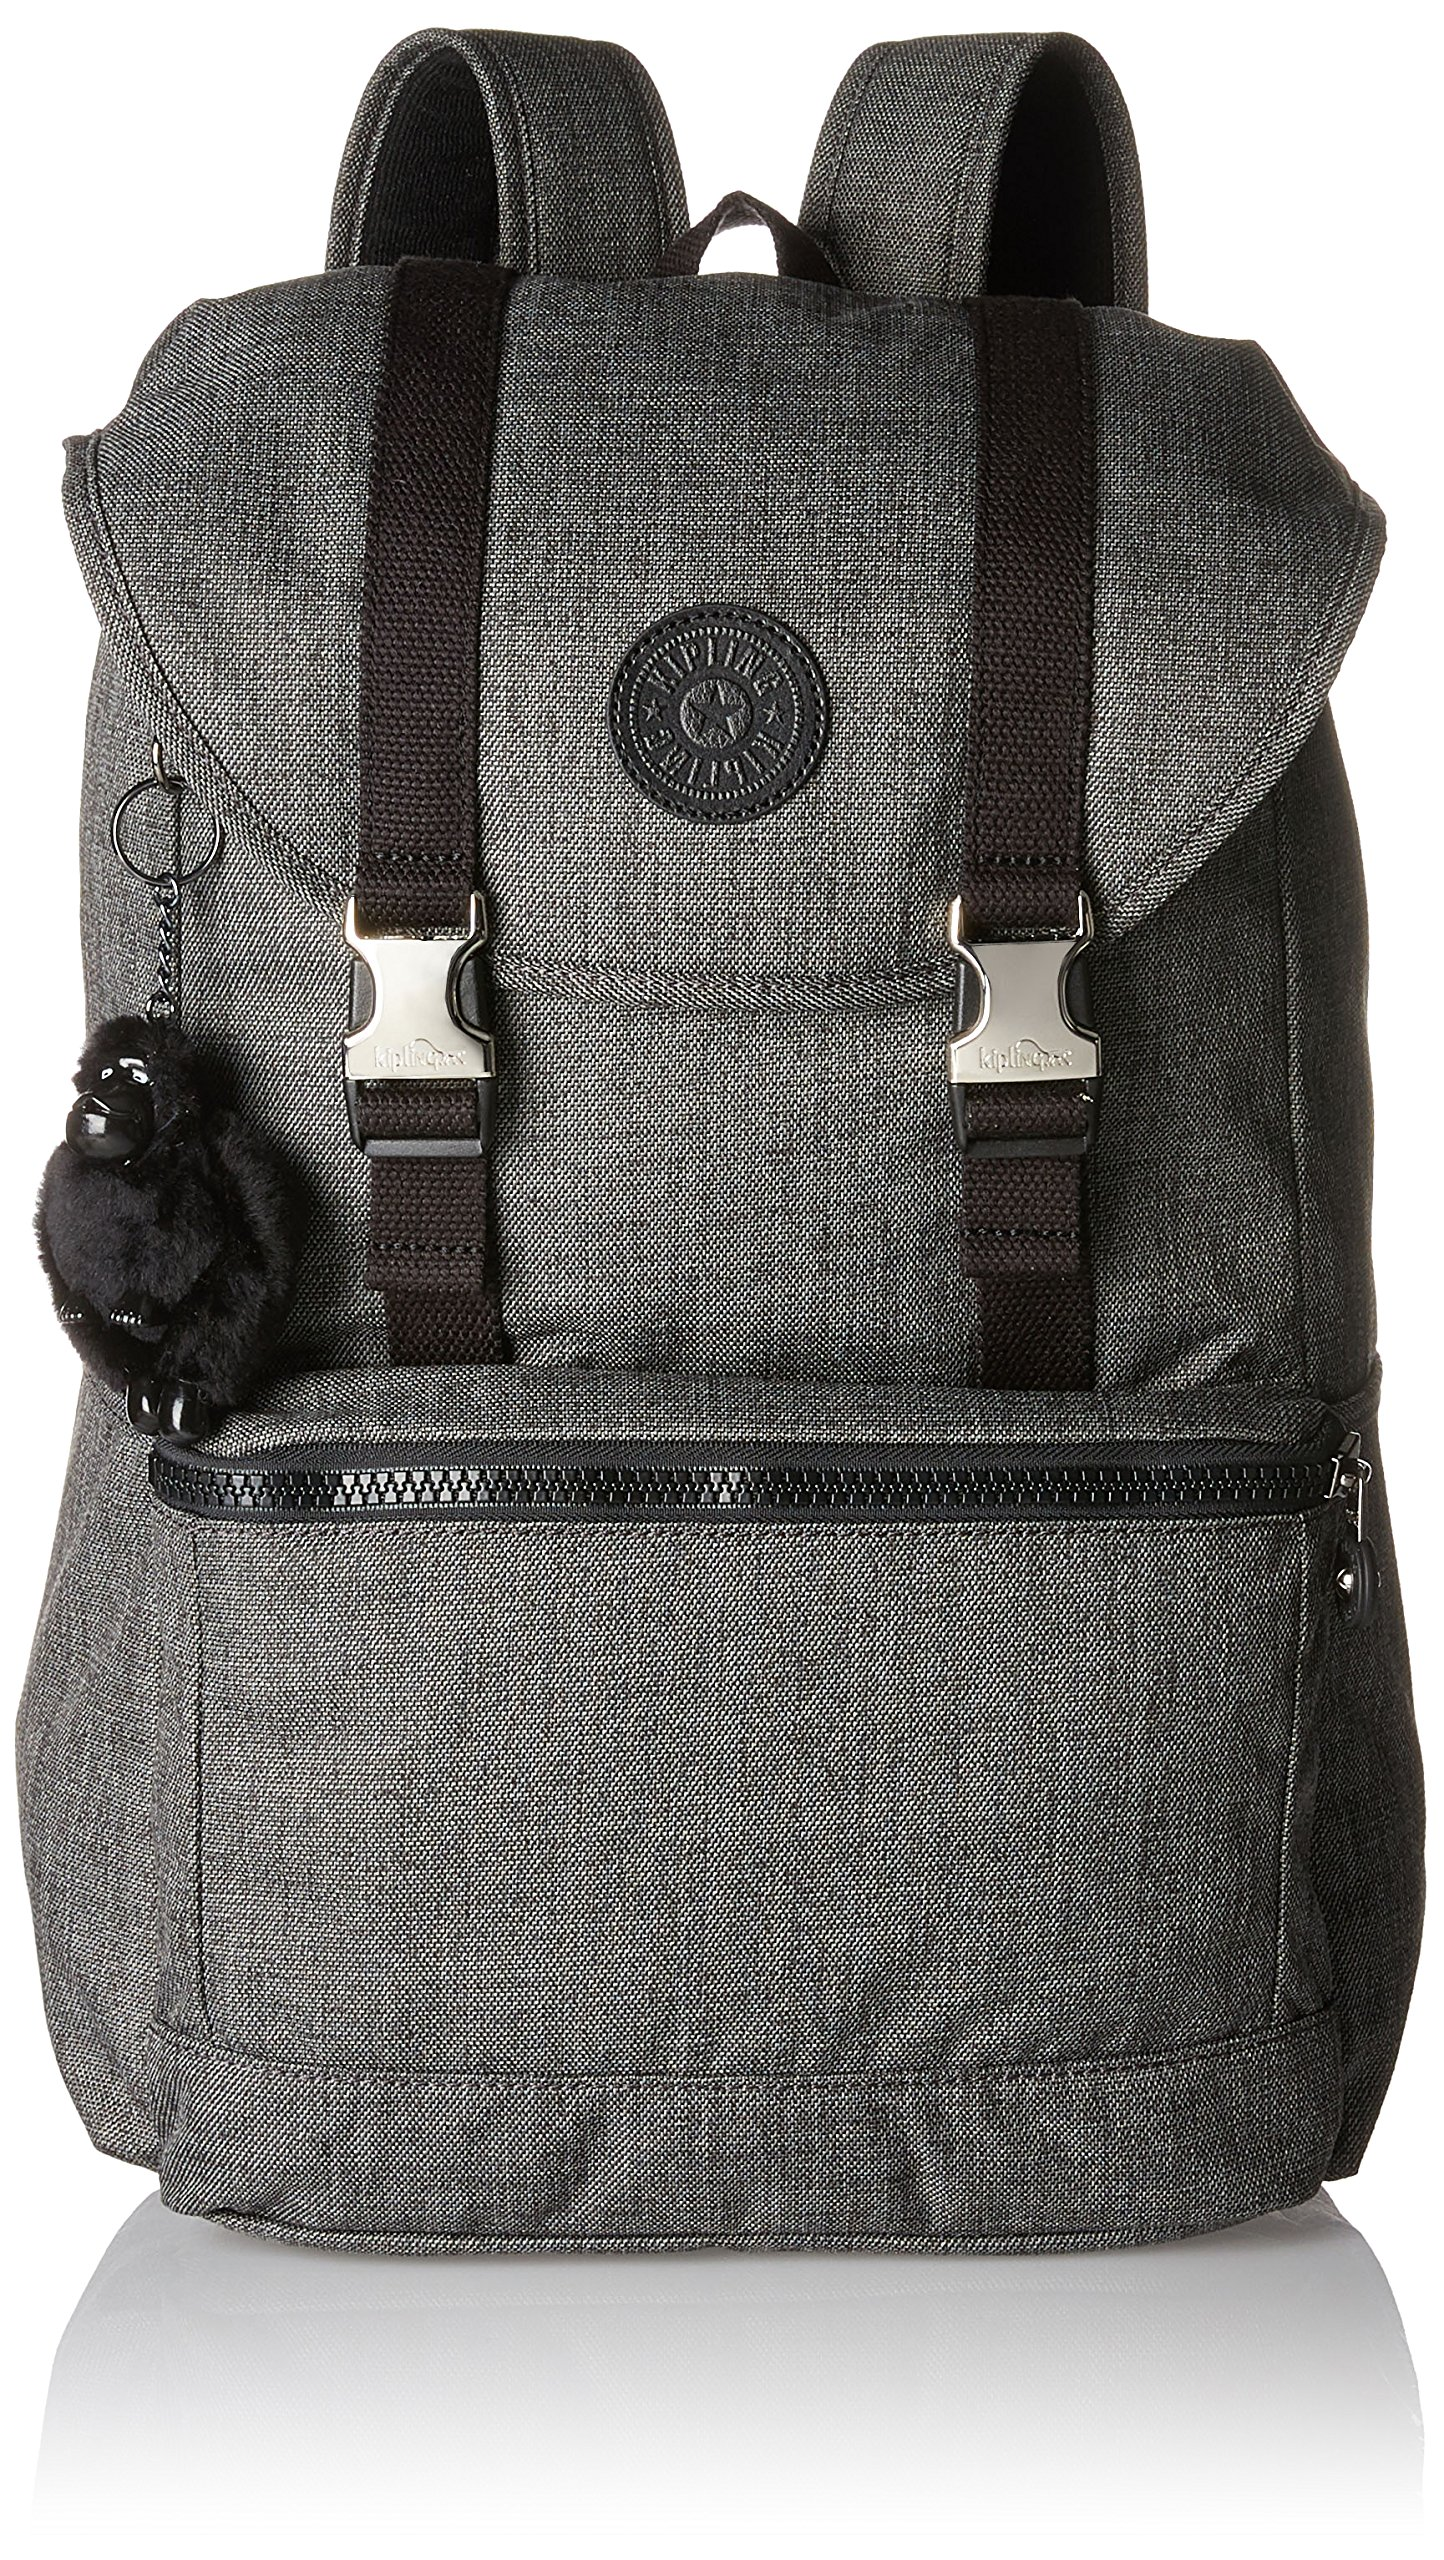 Kipling Experience Large Backpack Cotton Grey